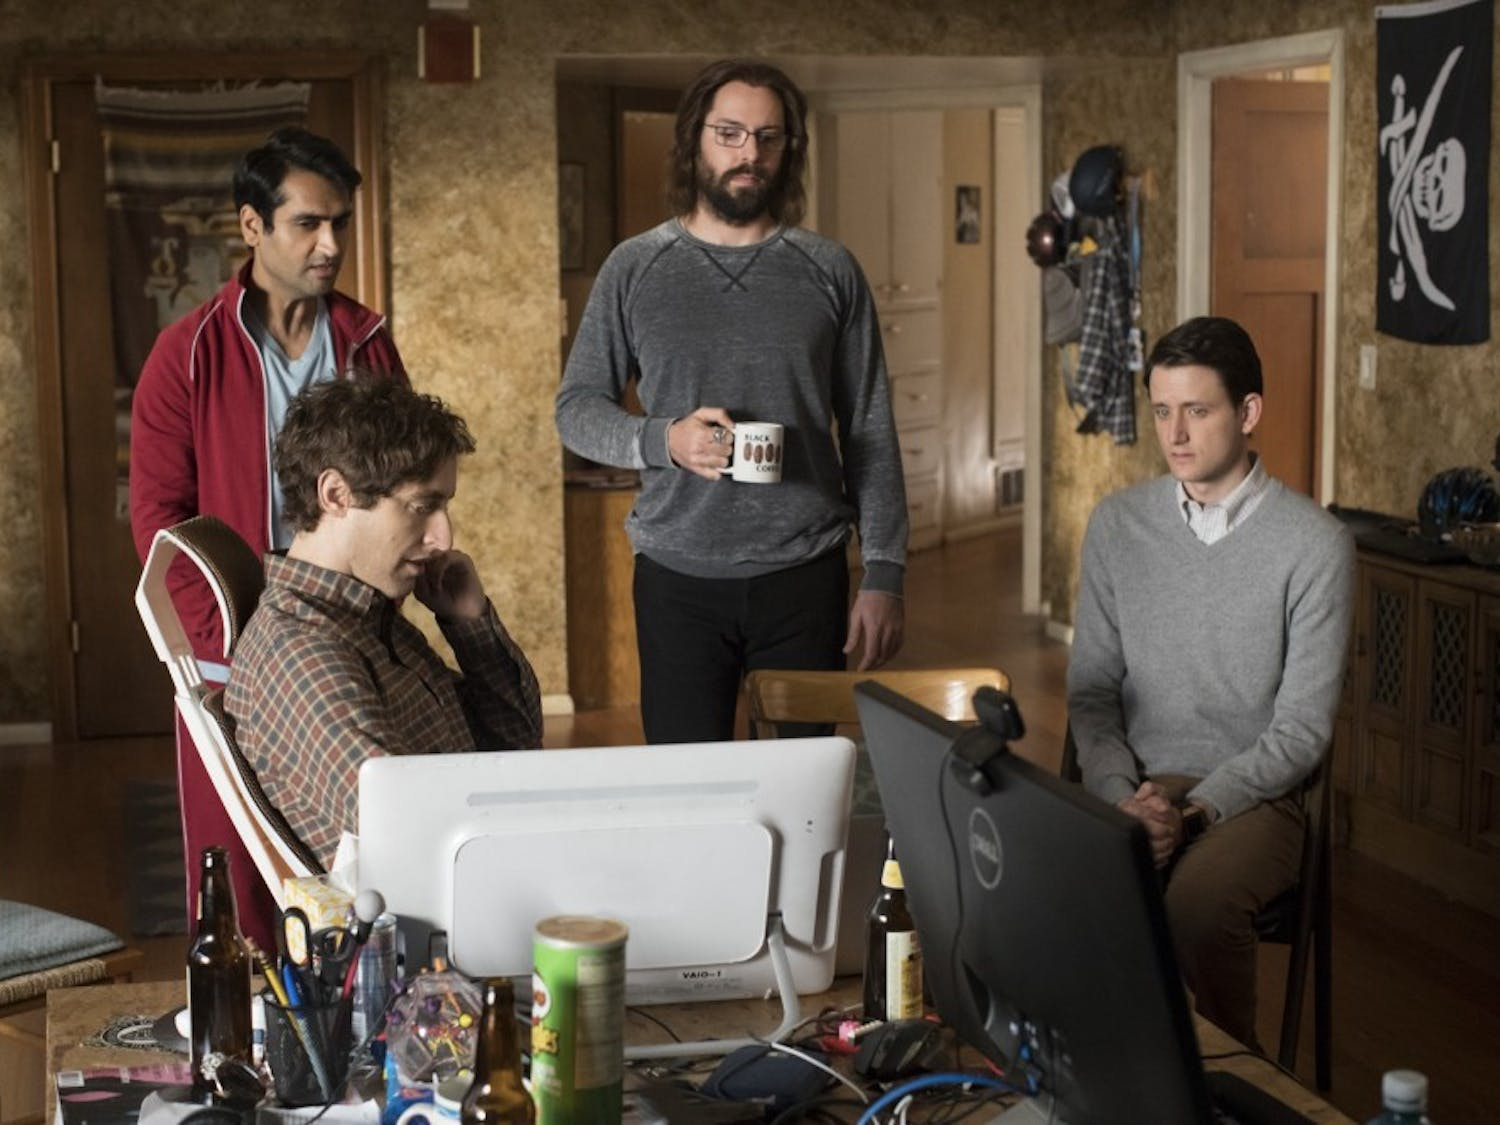 """Thomas Middleditch, Kumail Nanjiani, Martin Starr and Zach Woods star in """"Silicon Valley,"""" thenew season premiering tonight at 10 p.m. on HBO."""